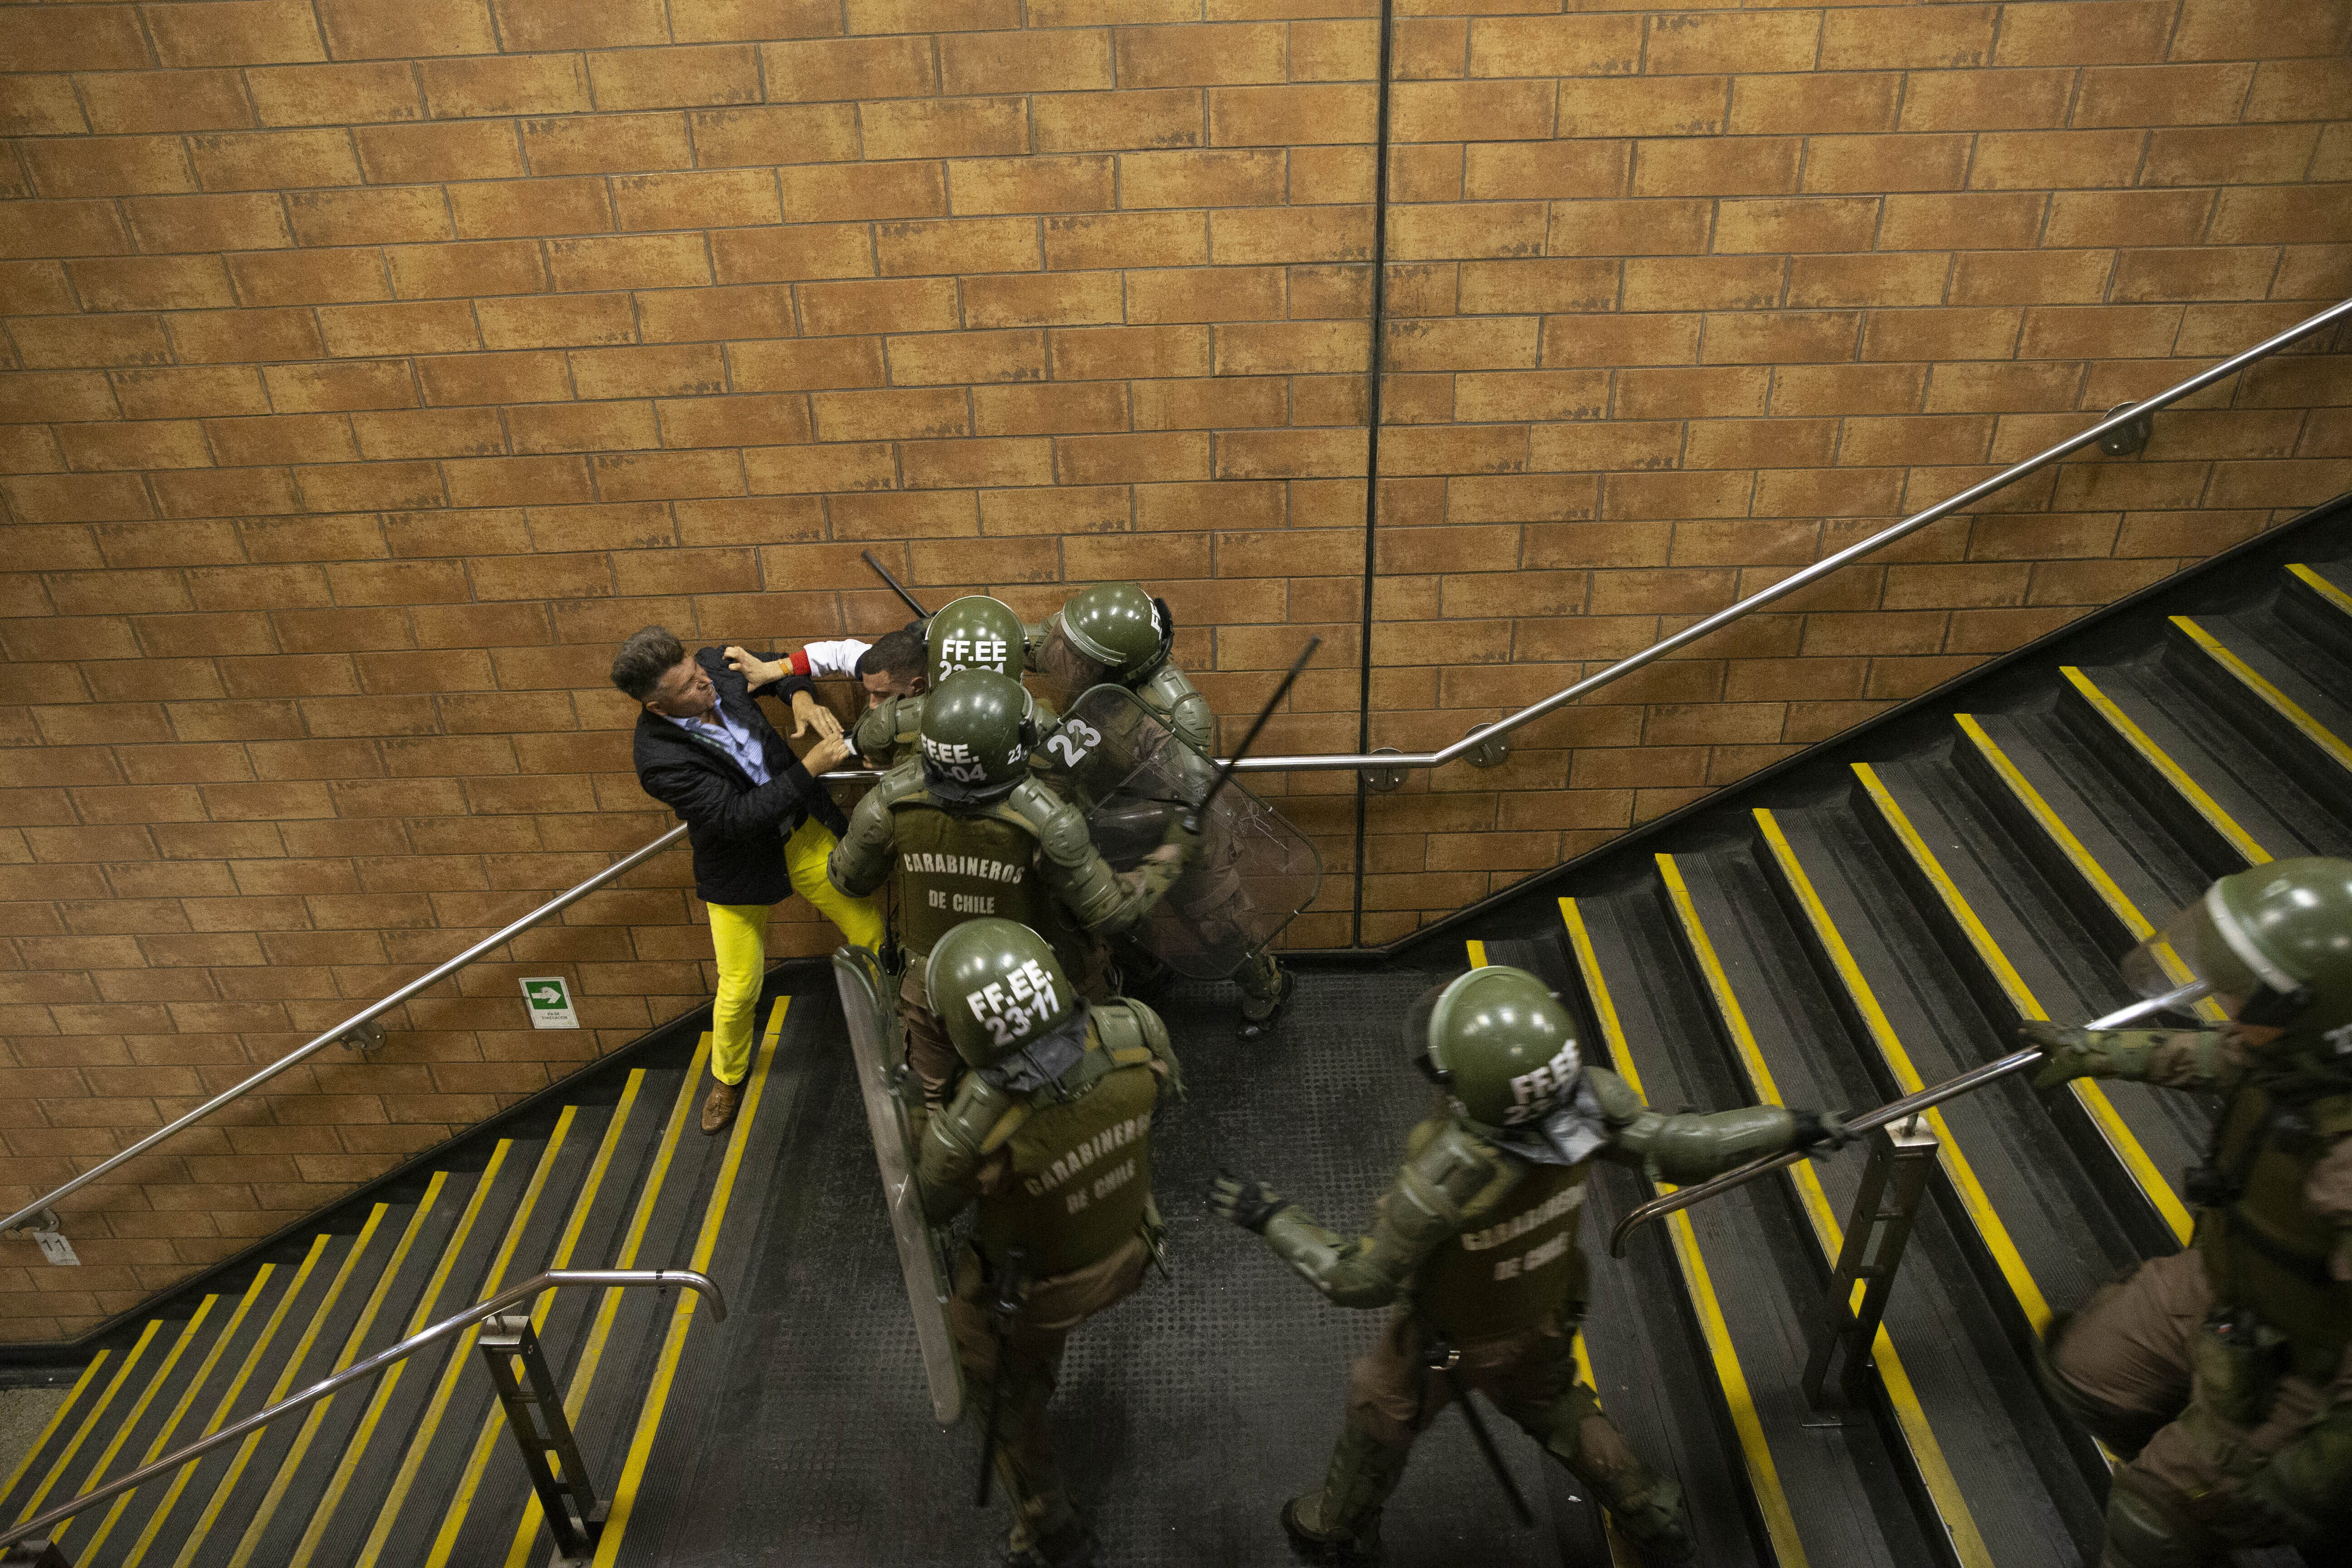 Chilean Carabineros separate two men who were fighting during a student protest against the rising cost of subway and bus fare, in Santiago, Friday, Oct. 18, 2019. (AP Photo/Esteban Felix)